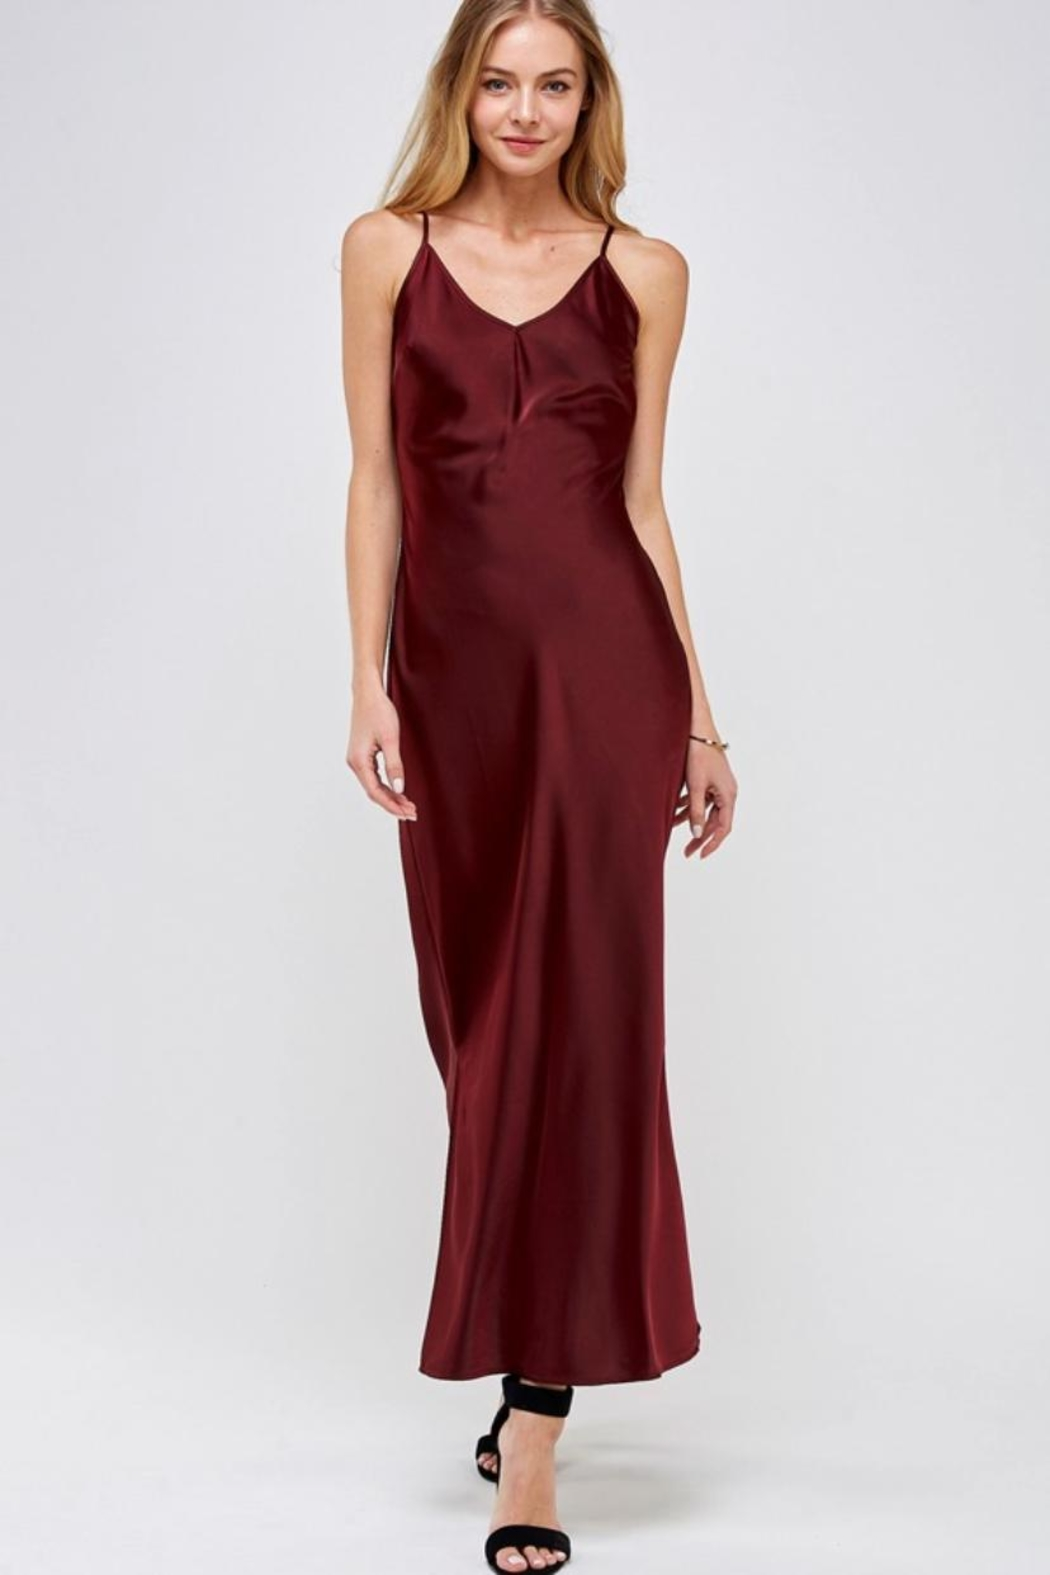 essue Wine Slip Dress - Main Image